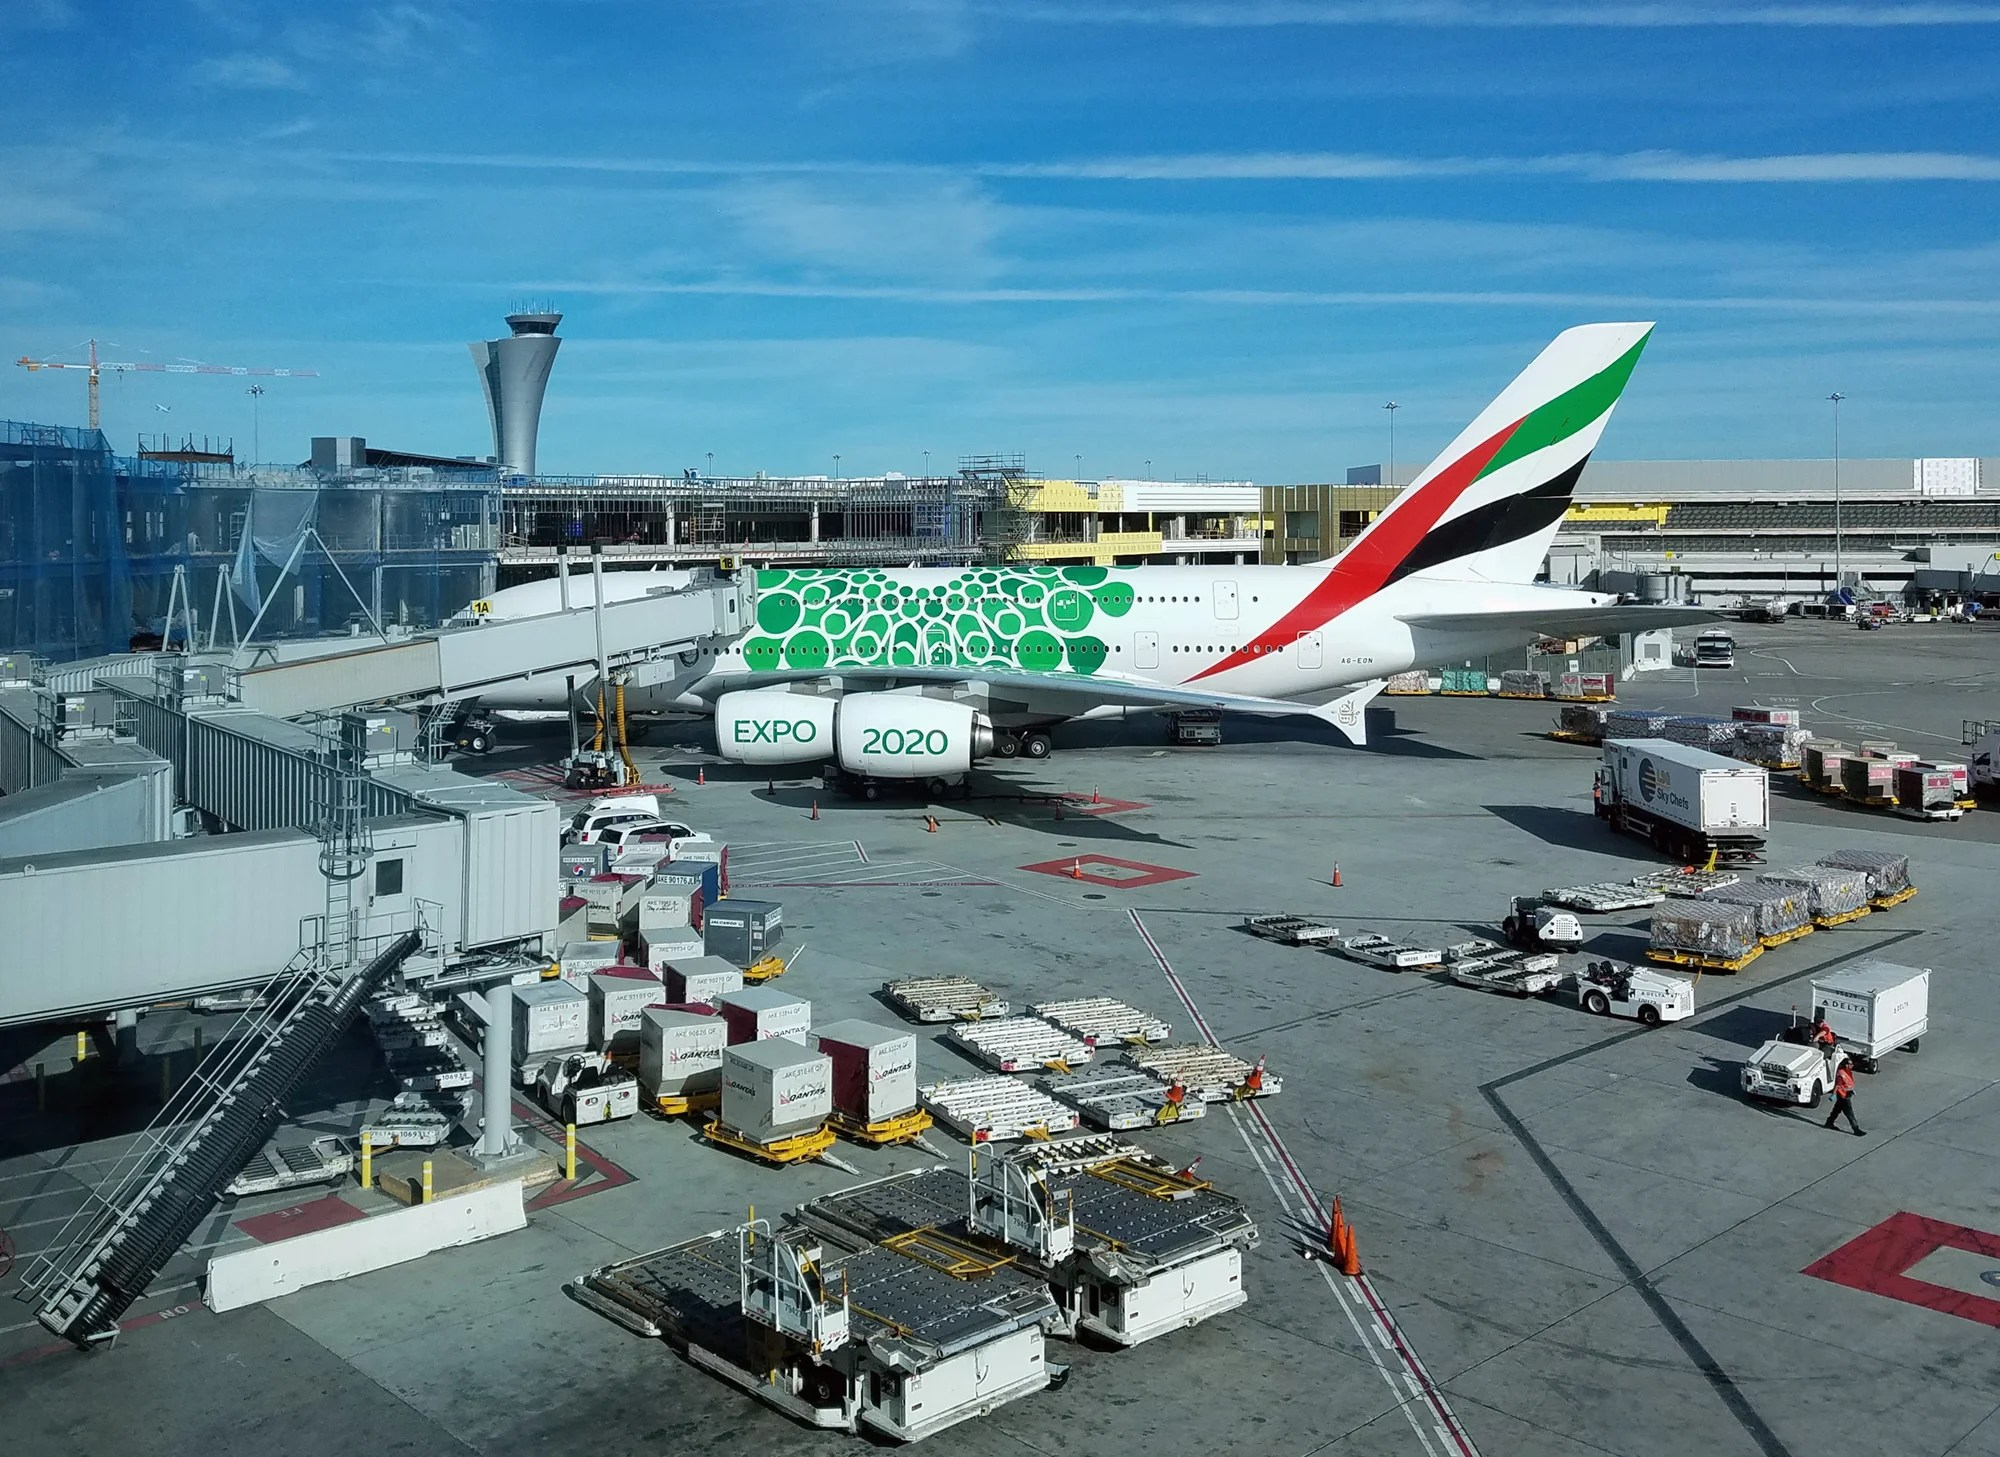 Top 10 ways to fly an international airline without flying all the way to its country